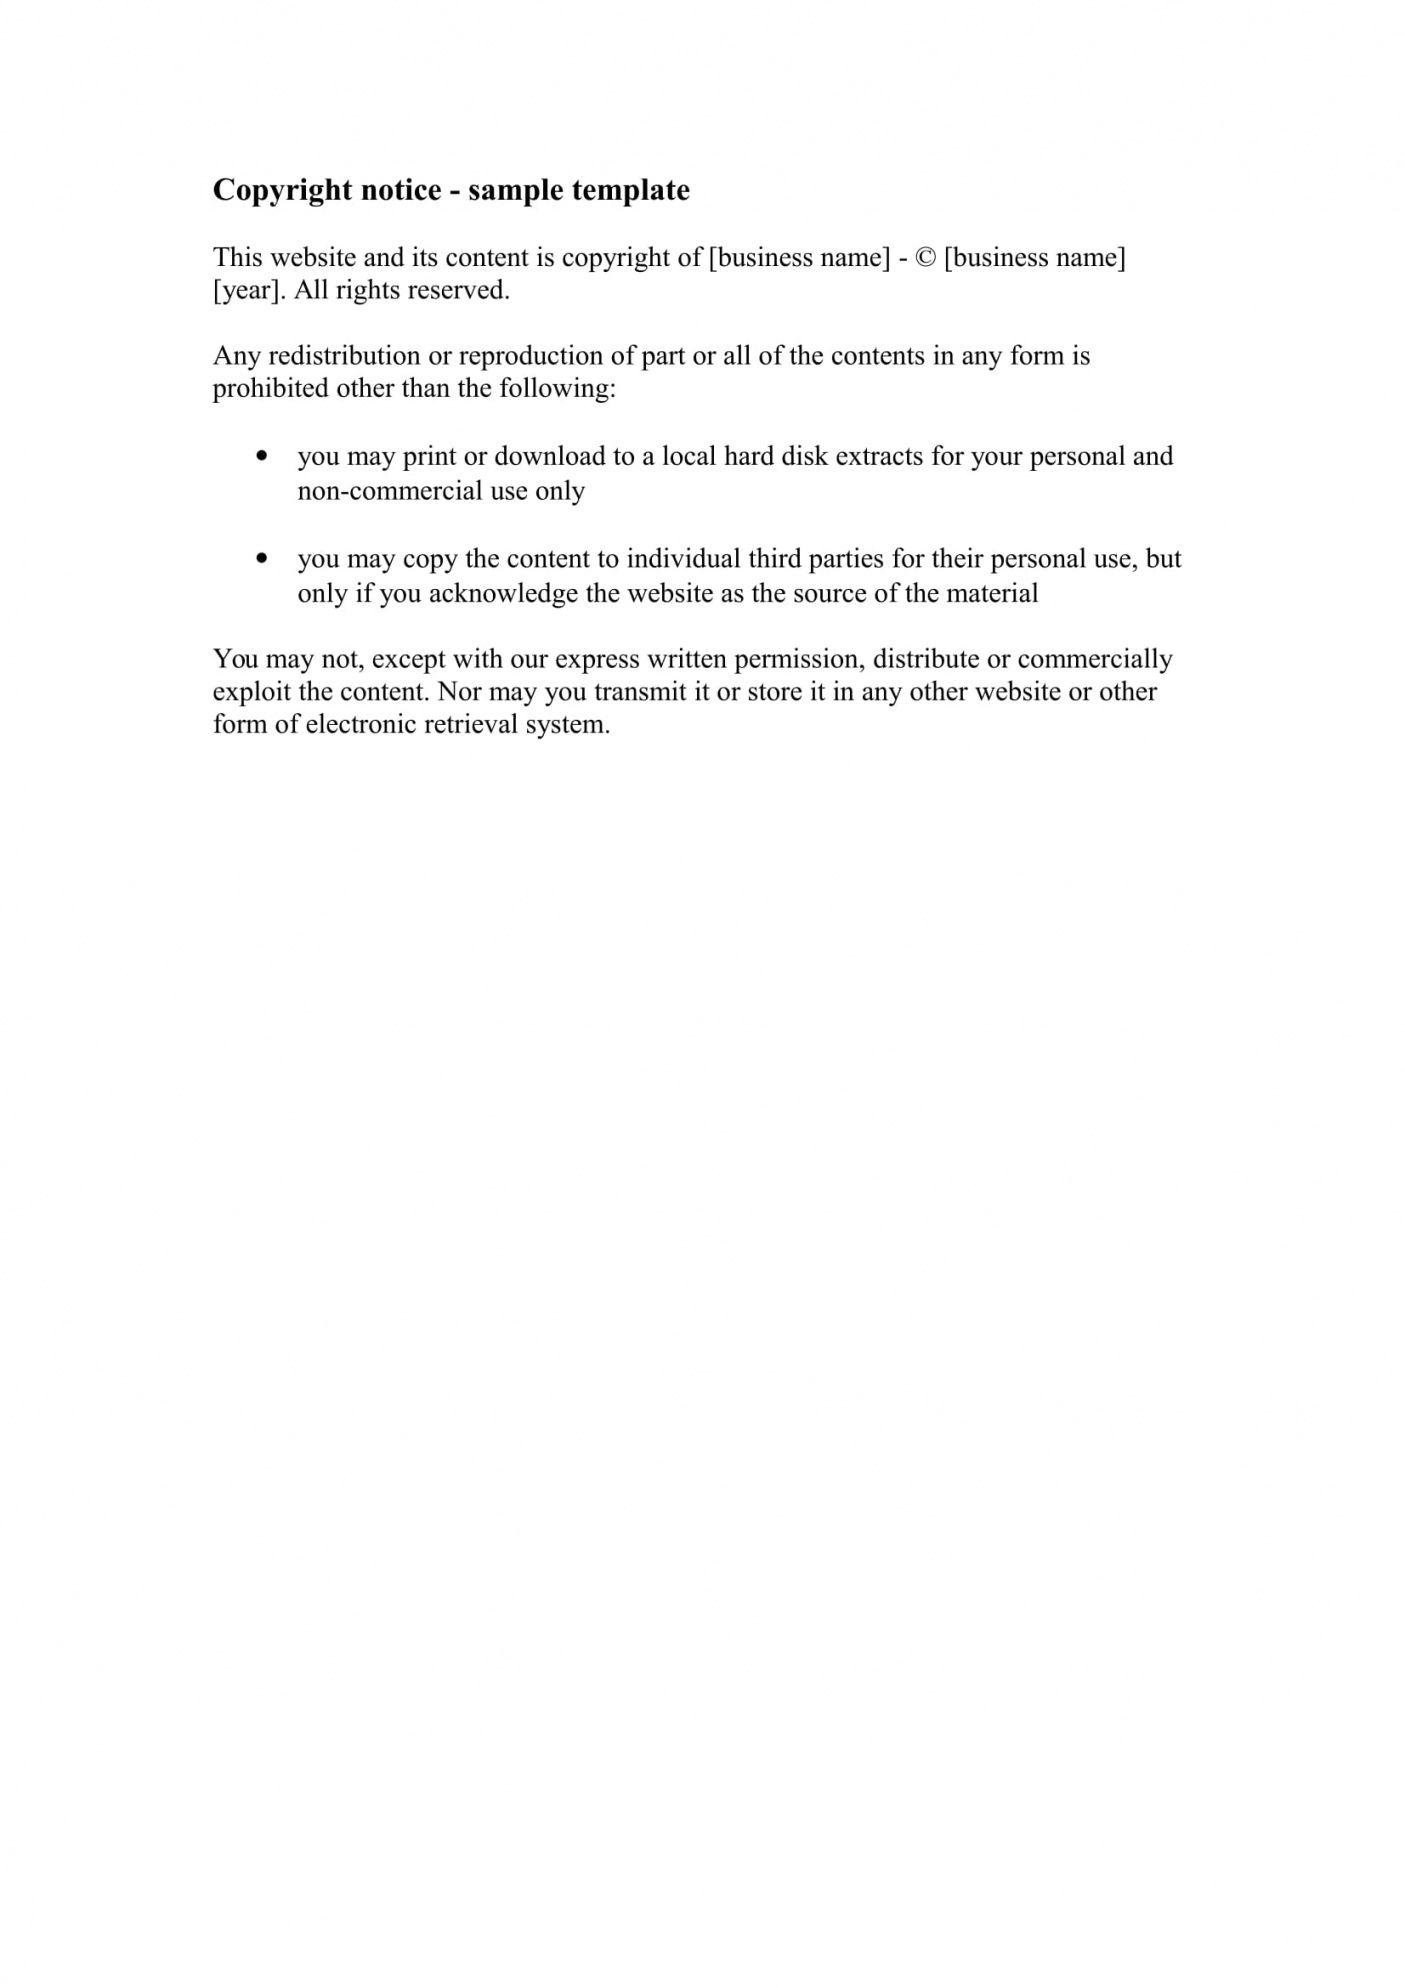 printable examples on how to write a copyright statement  examples photography copyright statement template